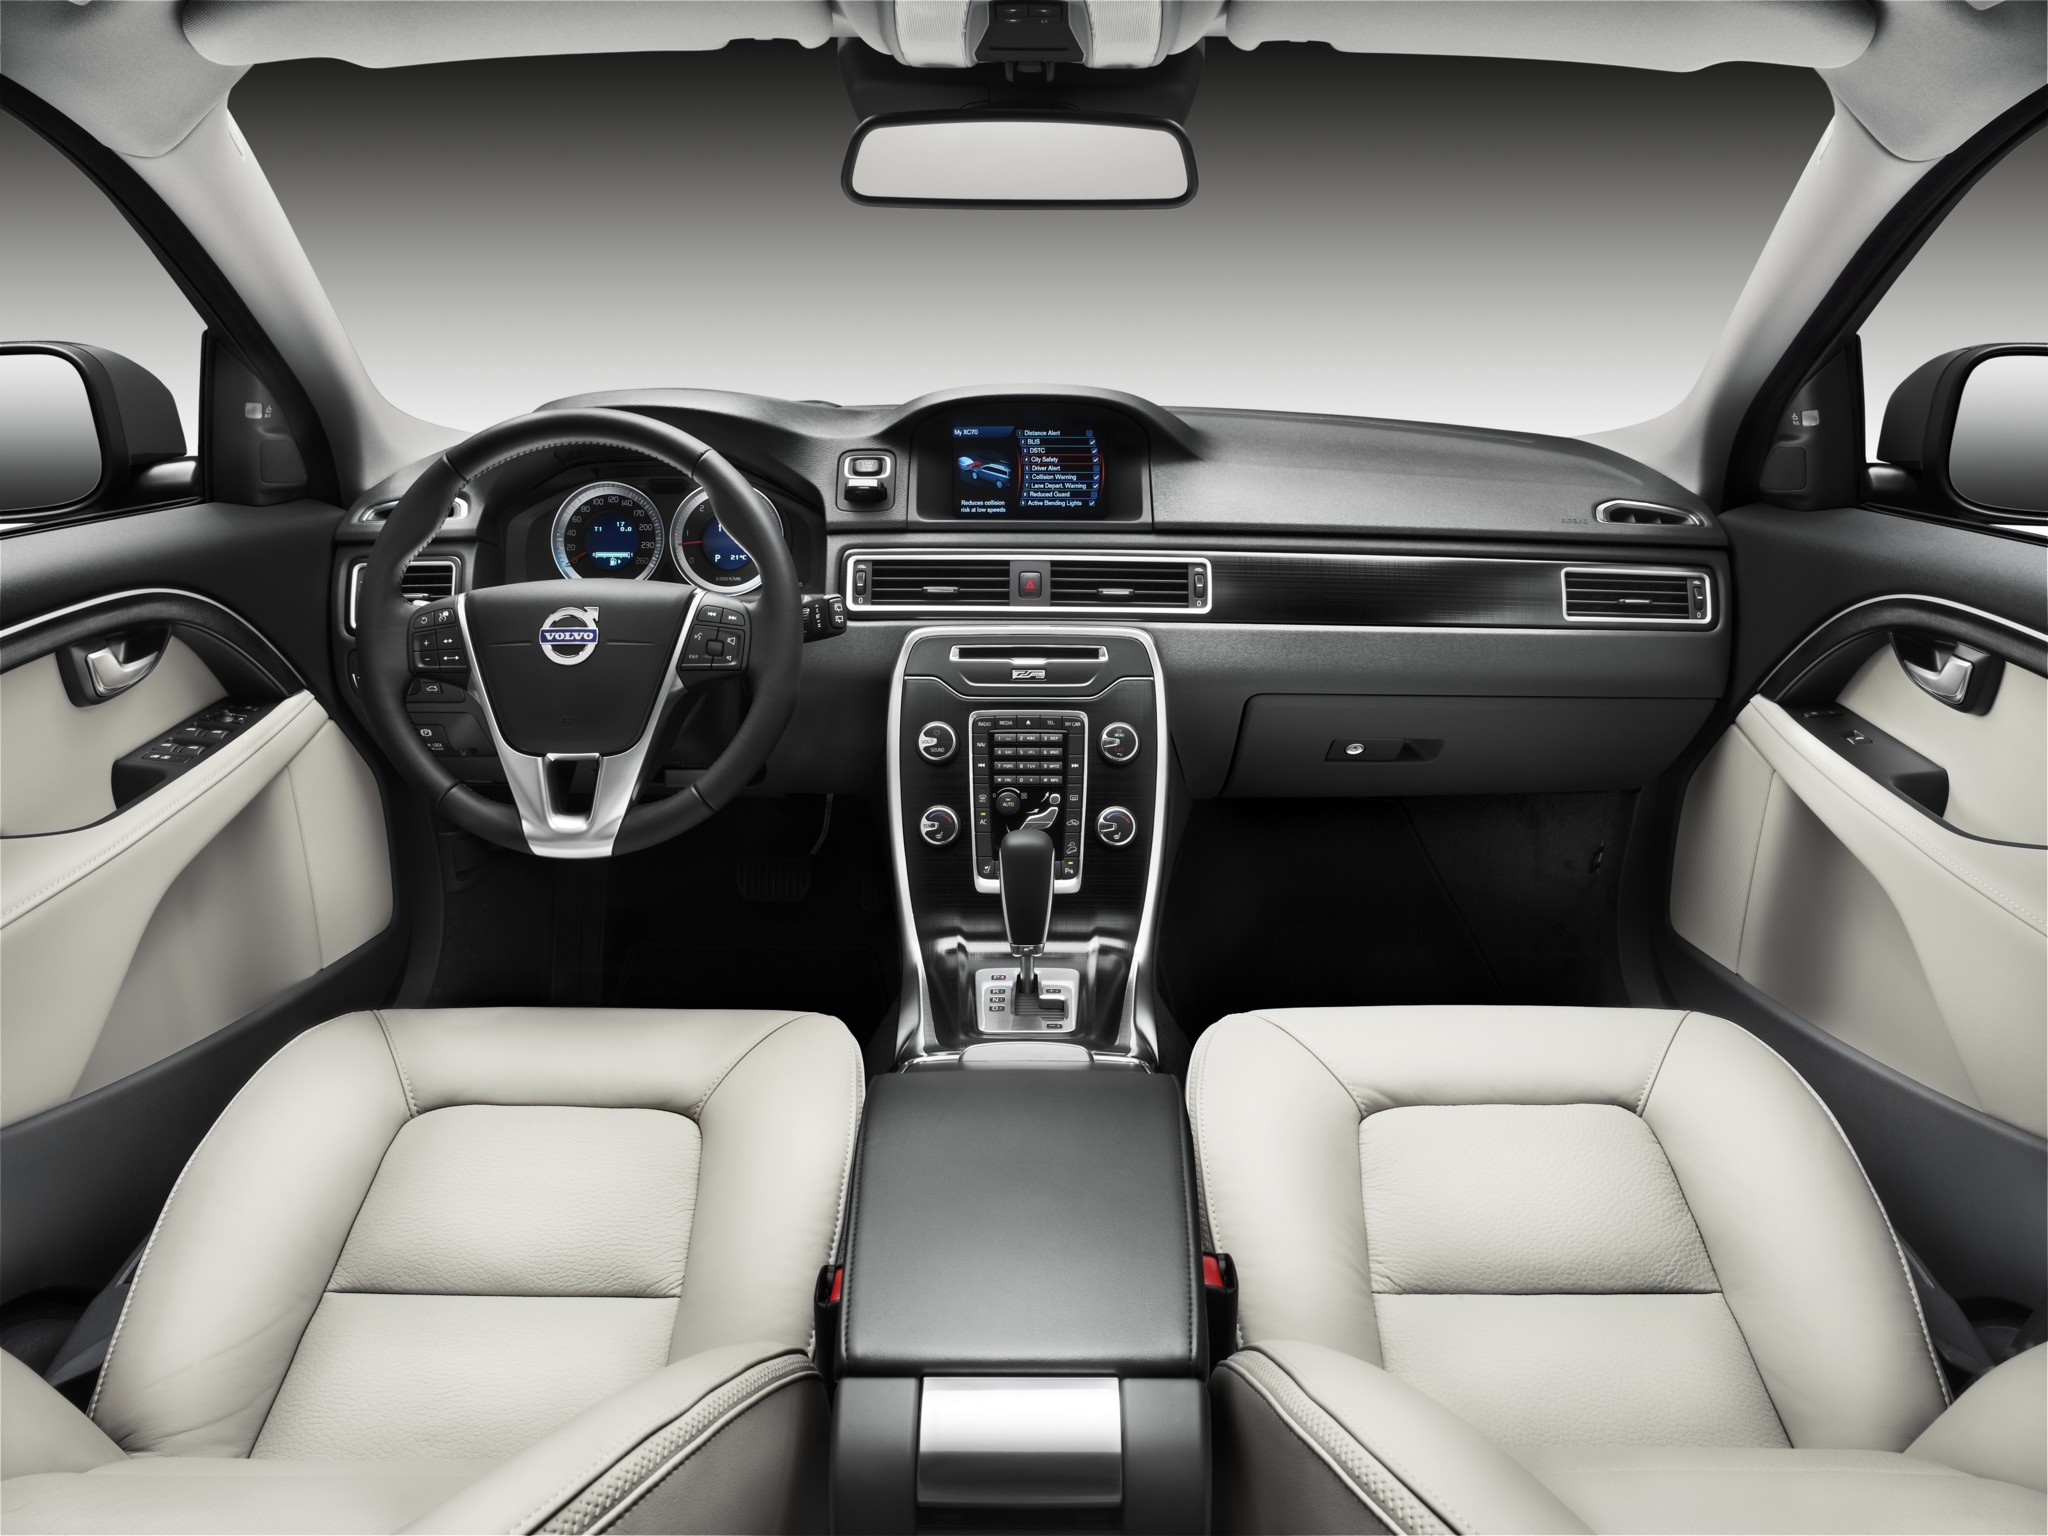 Nya Interieur Xc70 / 2nd Generation Facelift / Xc70 / Volvo / Base De